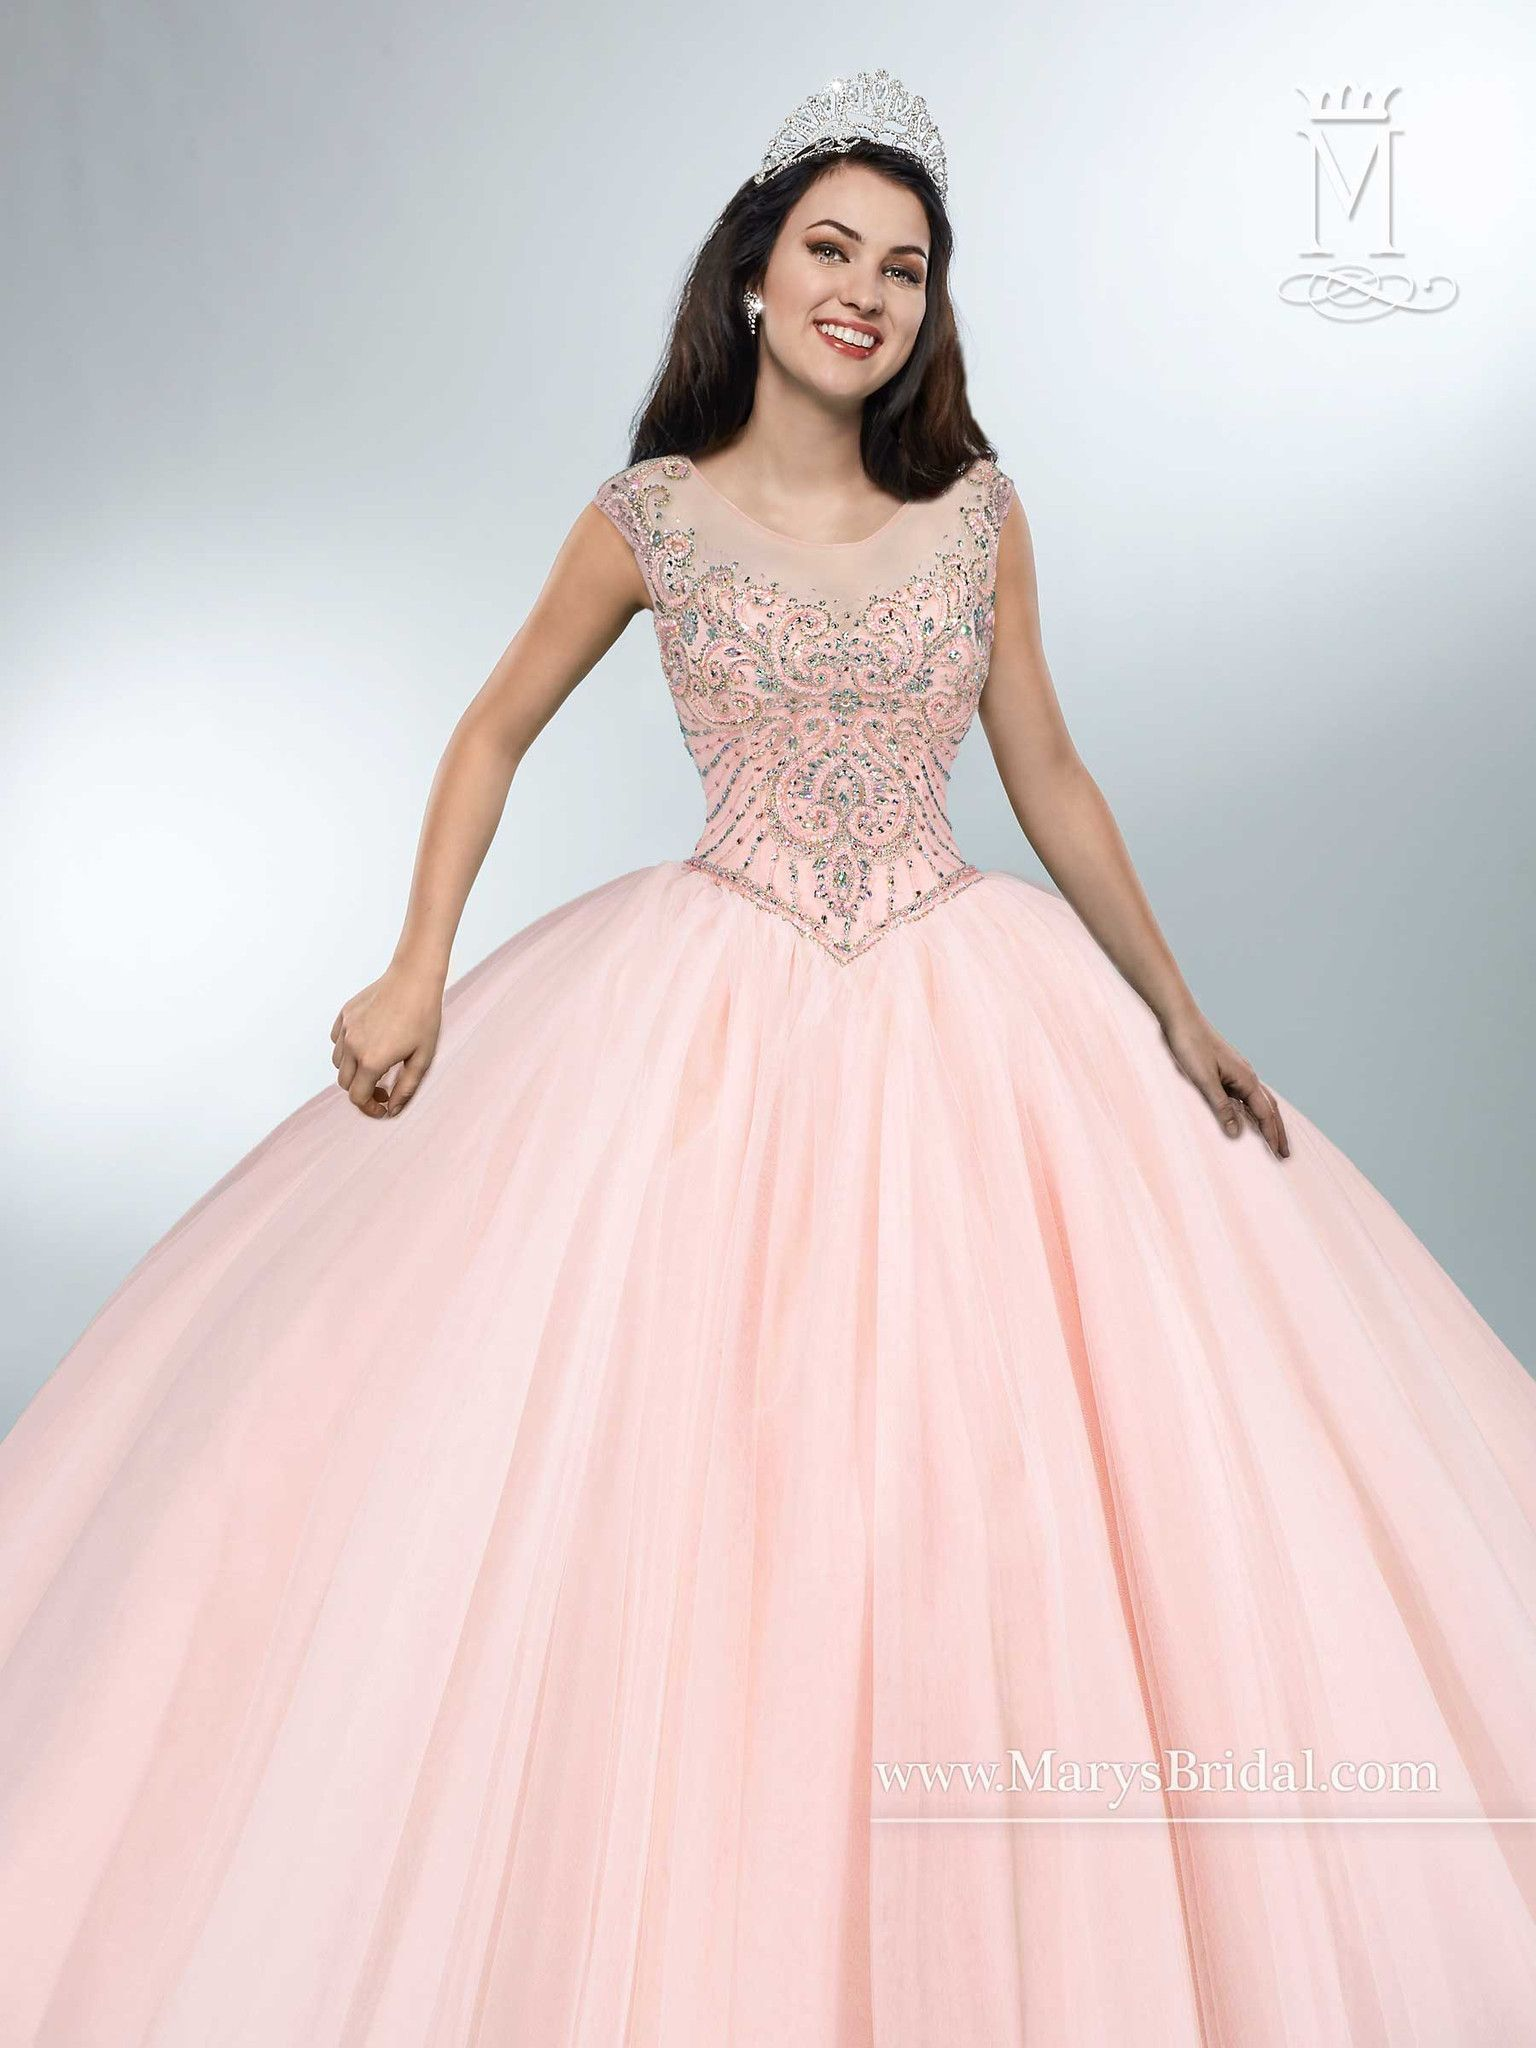 Mary\'s Bridal Beloving Collection Quinceanera Dress Style 4694 | Kleider